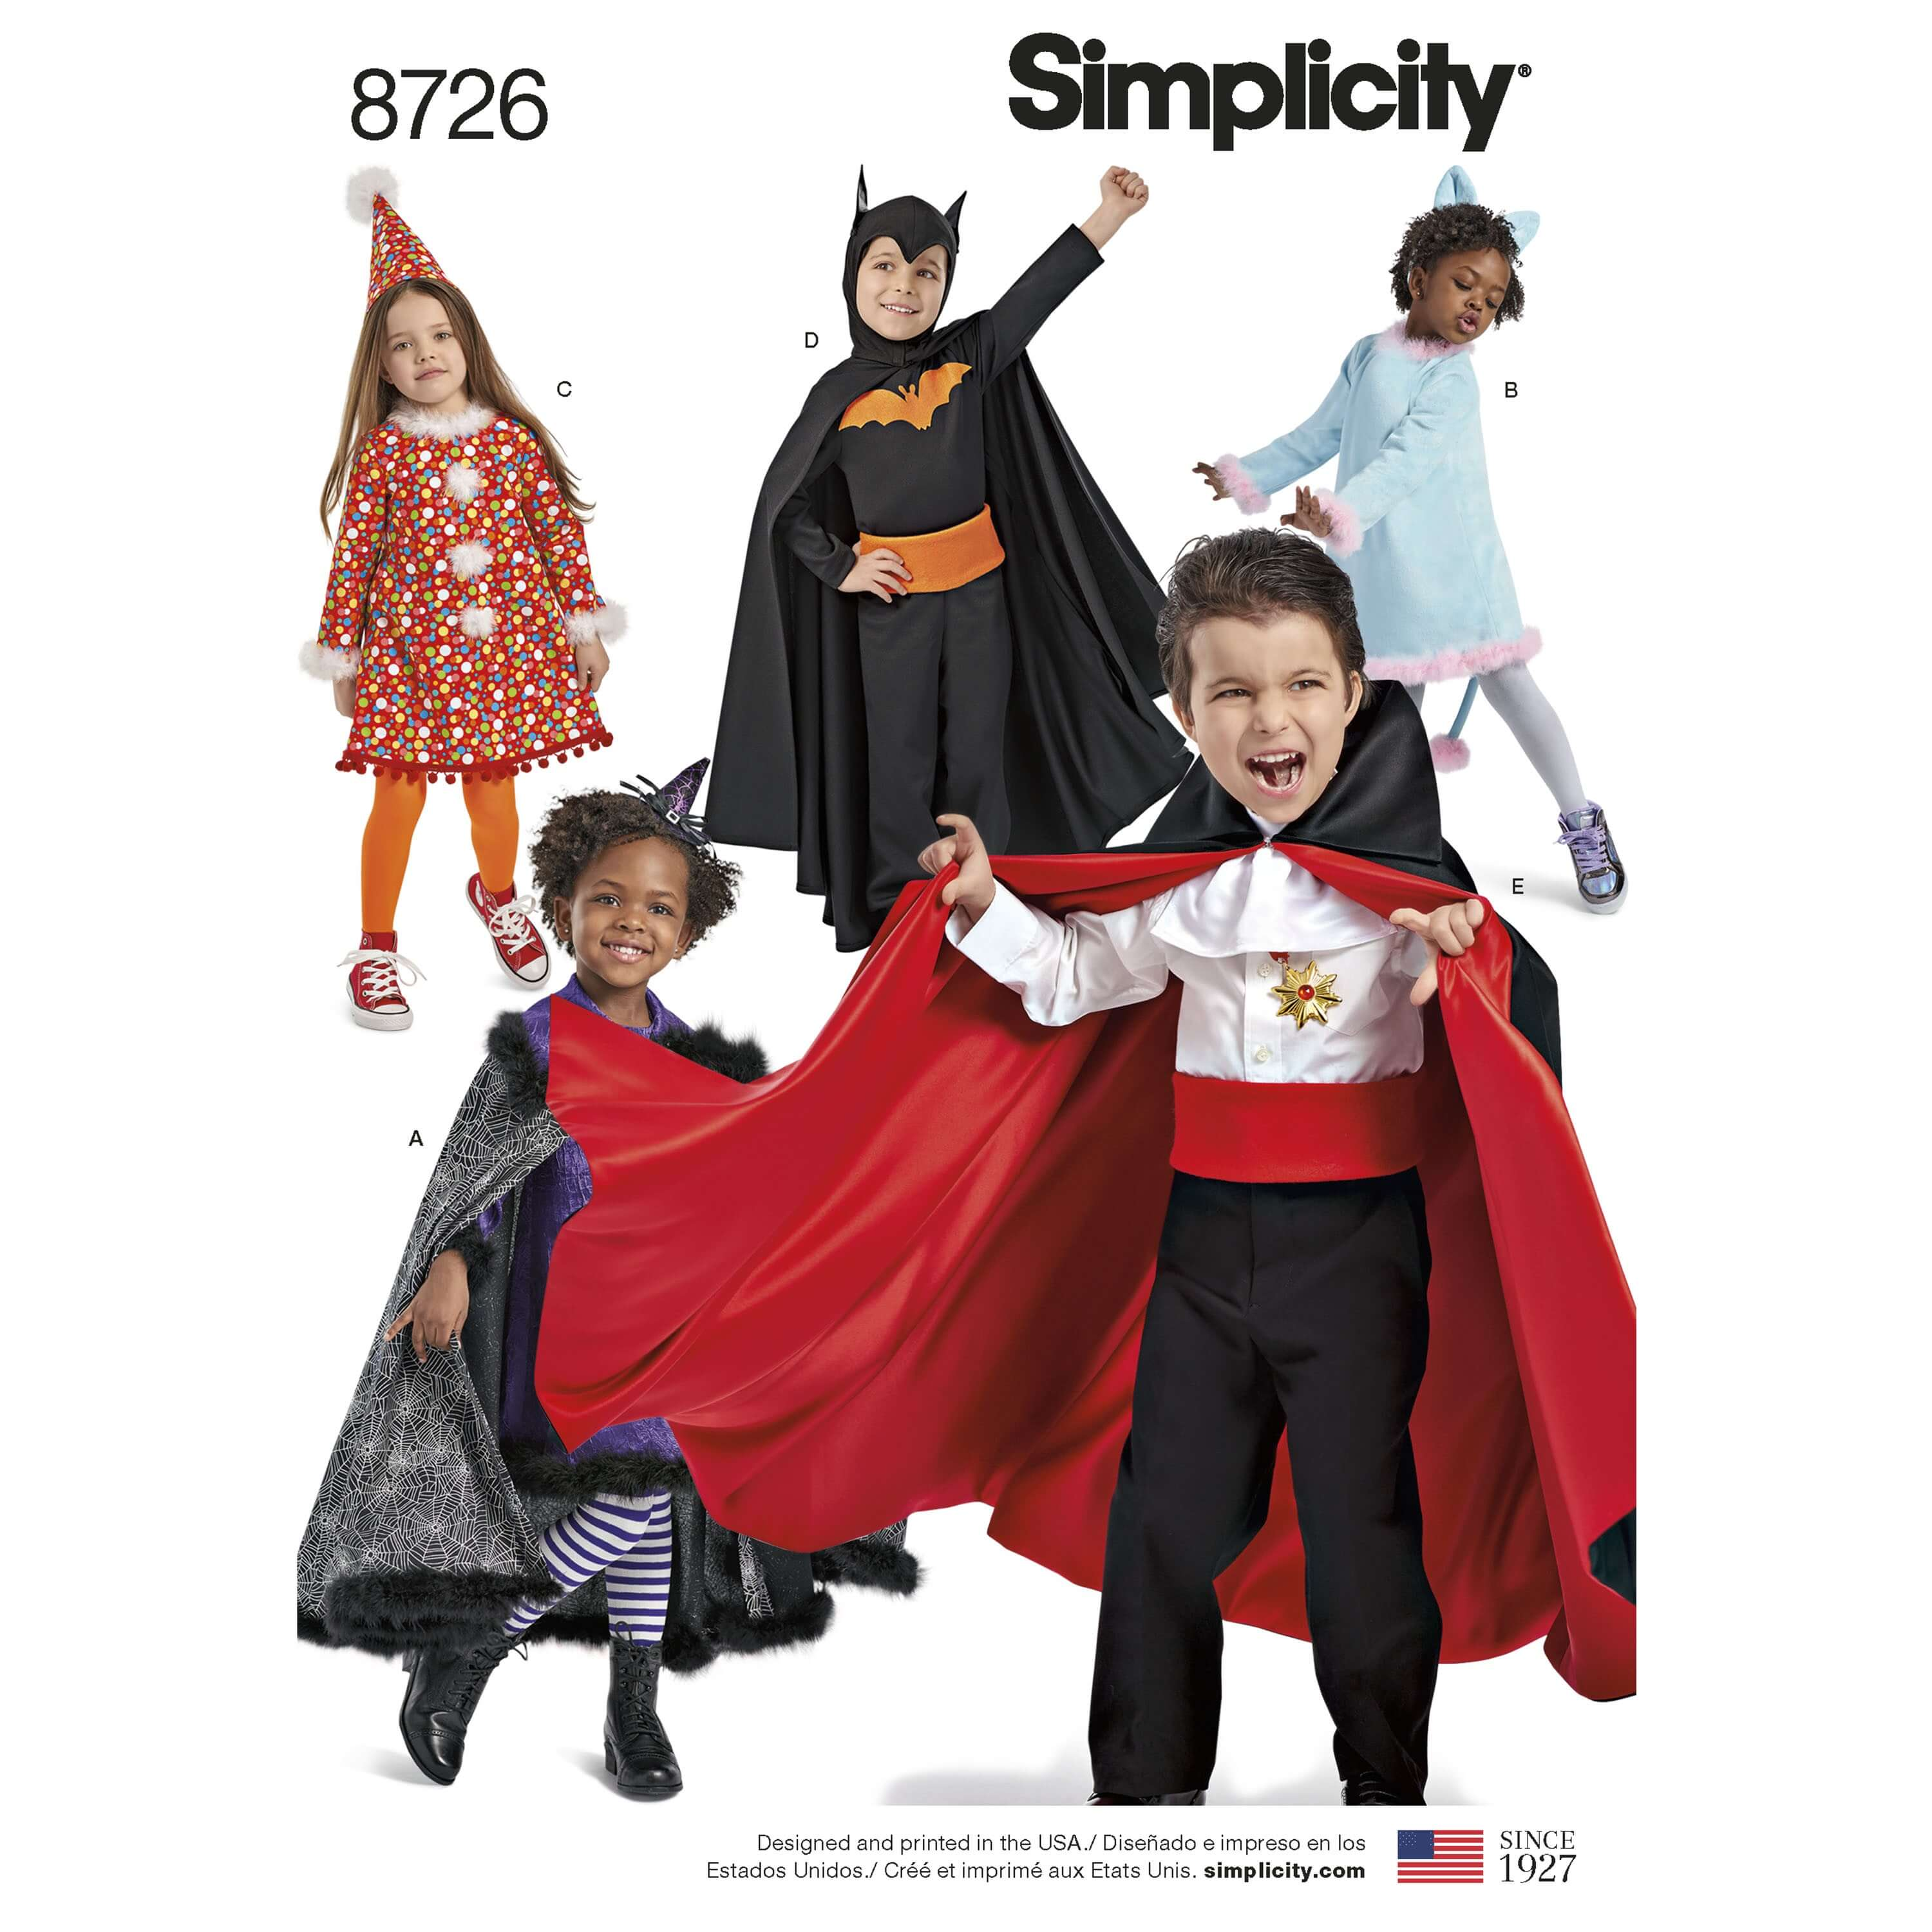 Simplicity Sewing Pattern 8726 Children's Classic Halloween Costumes